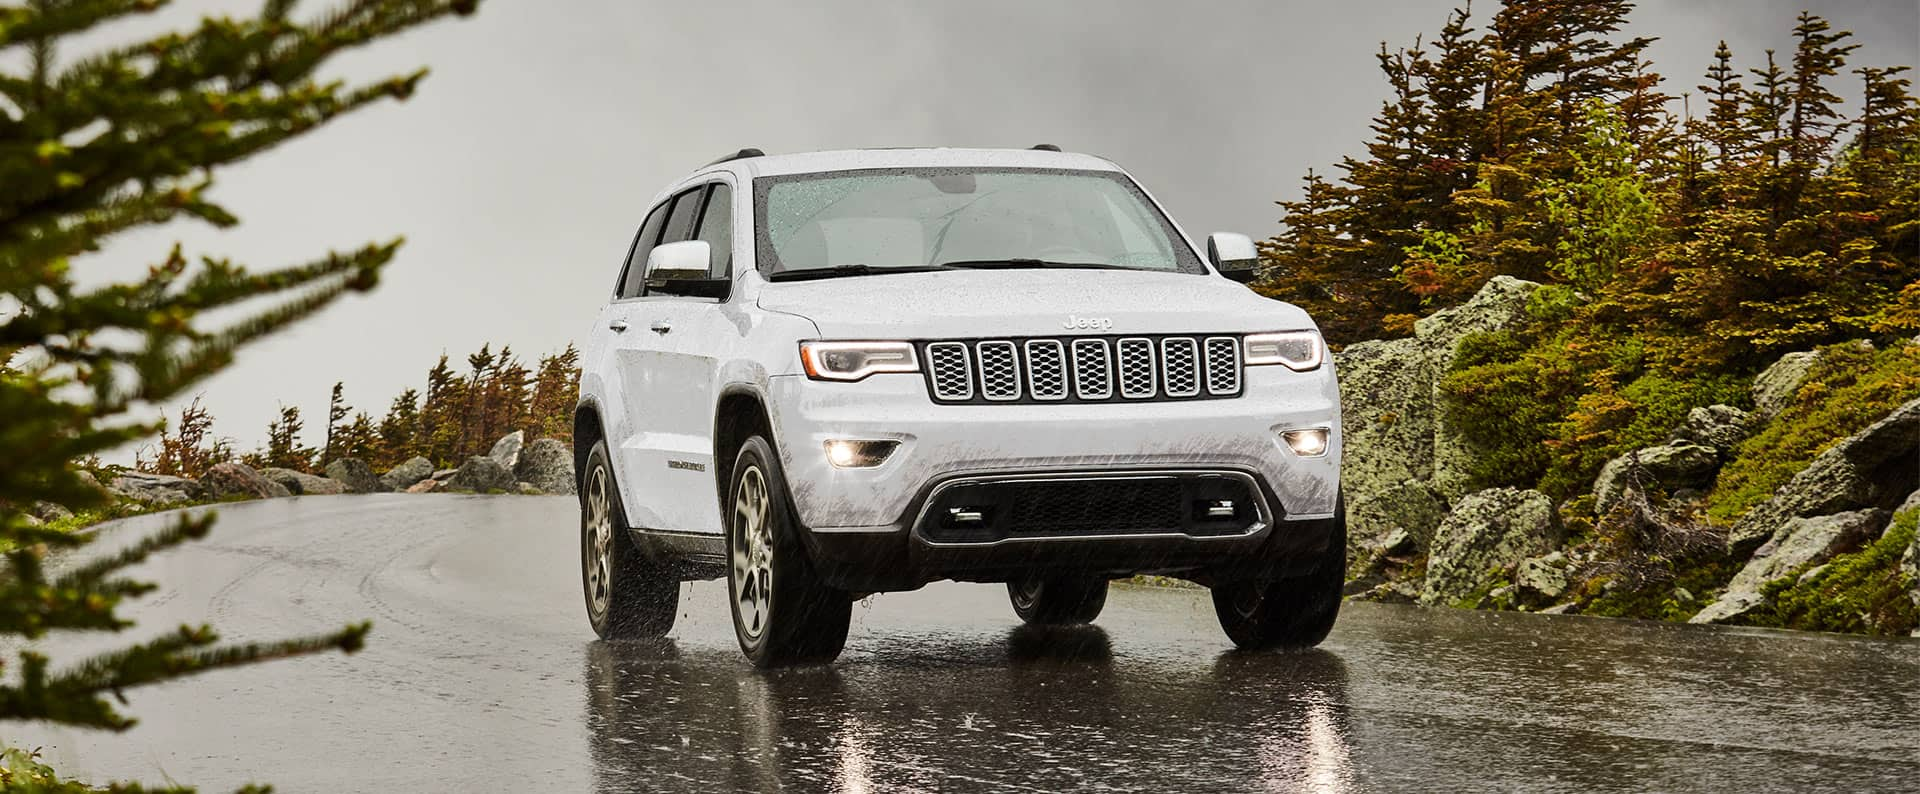 The 2021 Jeep Grand Cherokee Overland being driven on a wet street in the rain.